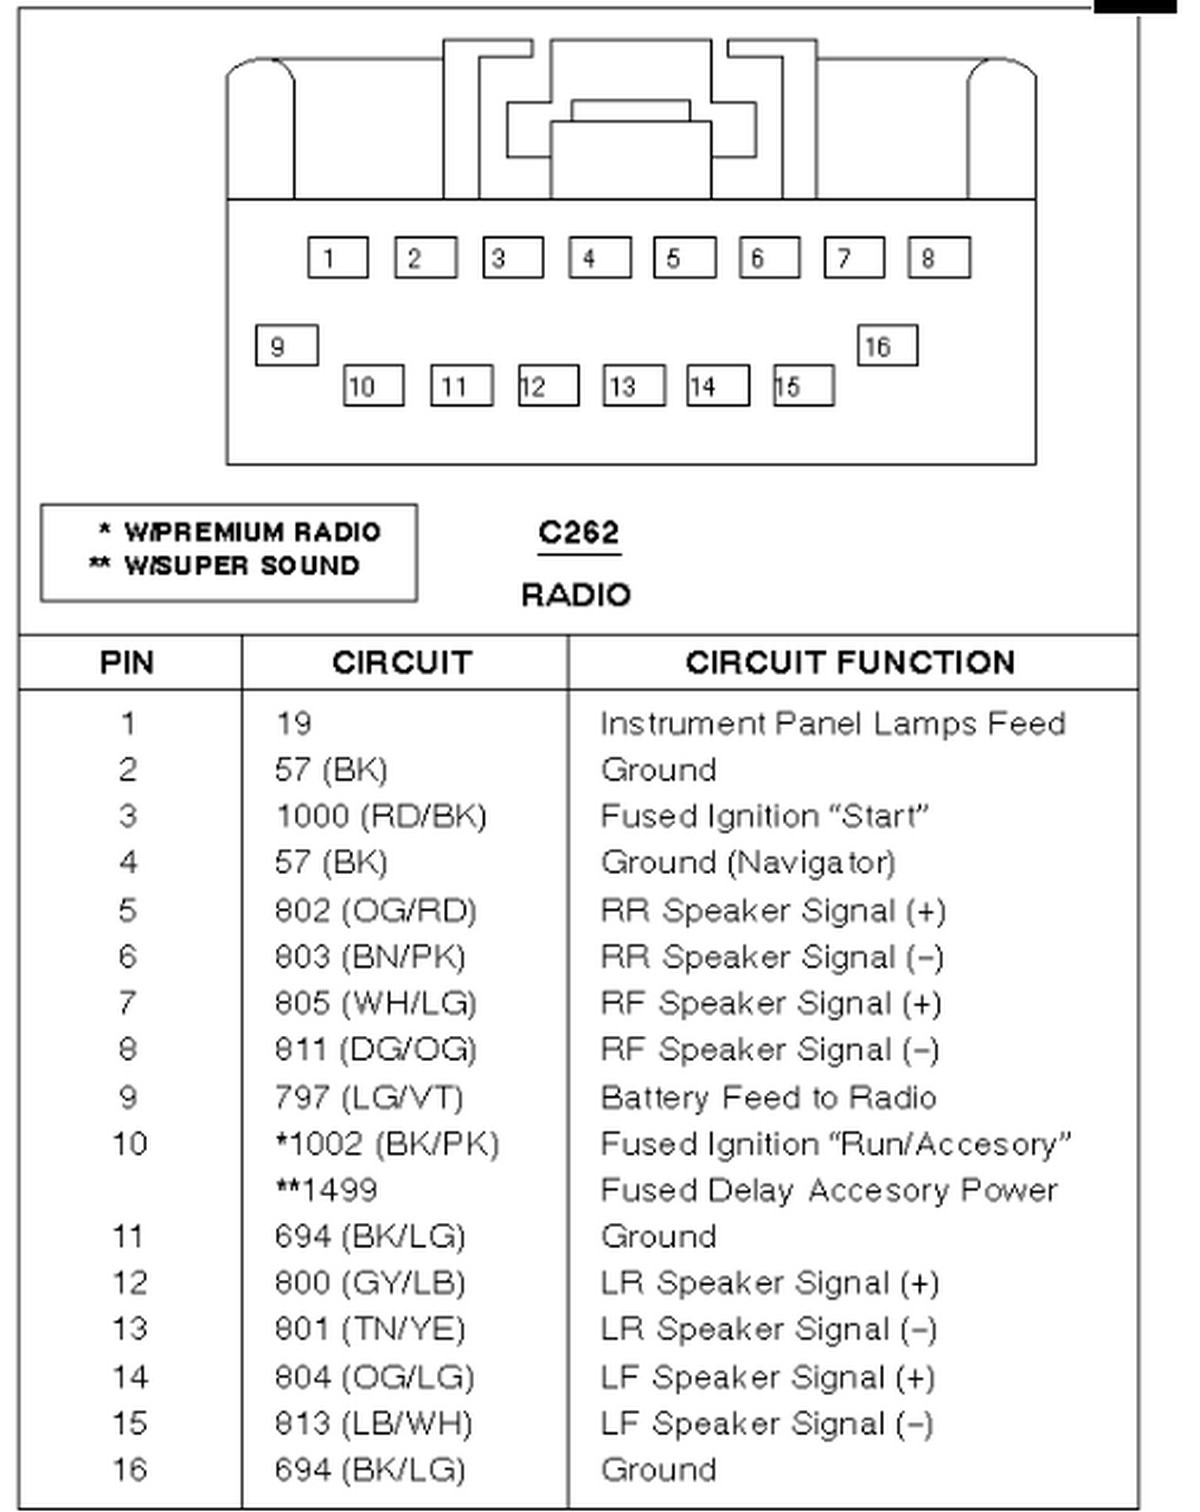 2001 Ford Excursion Wiring Diagram Reveolution Of Aspire Wire Harness Expedition Stereo 42 Trailer 1993 F450